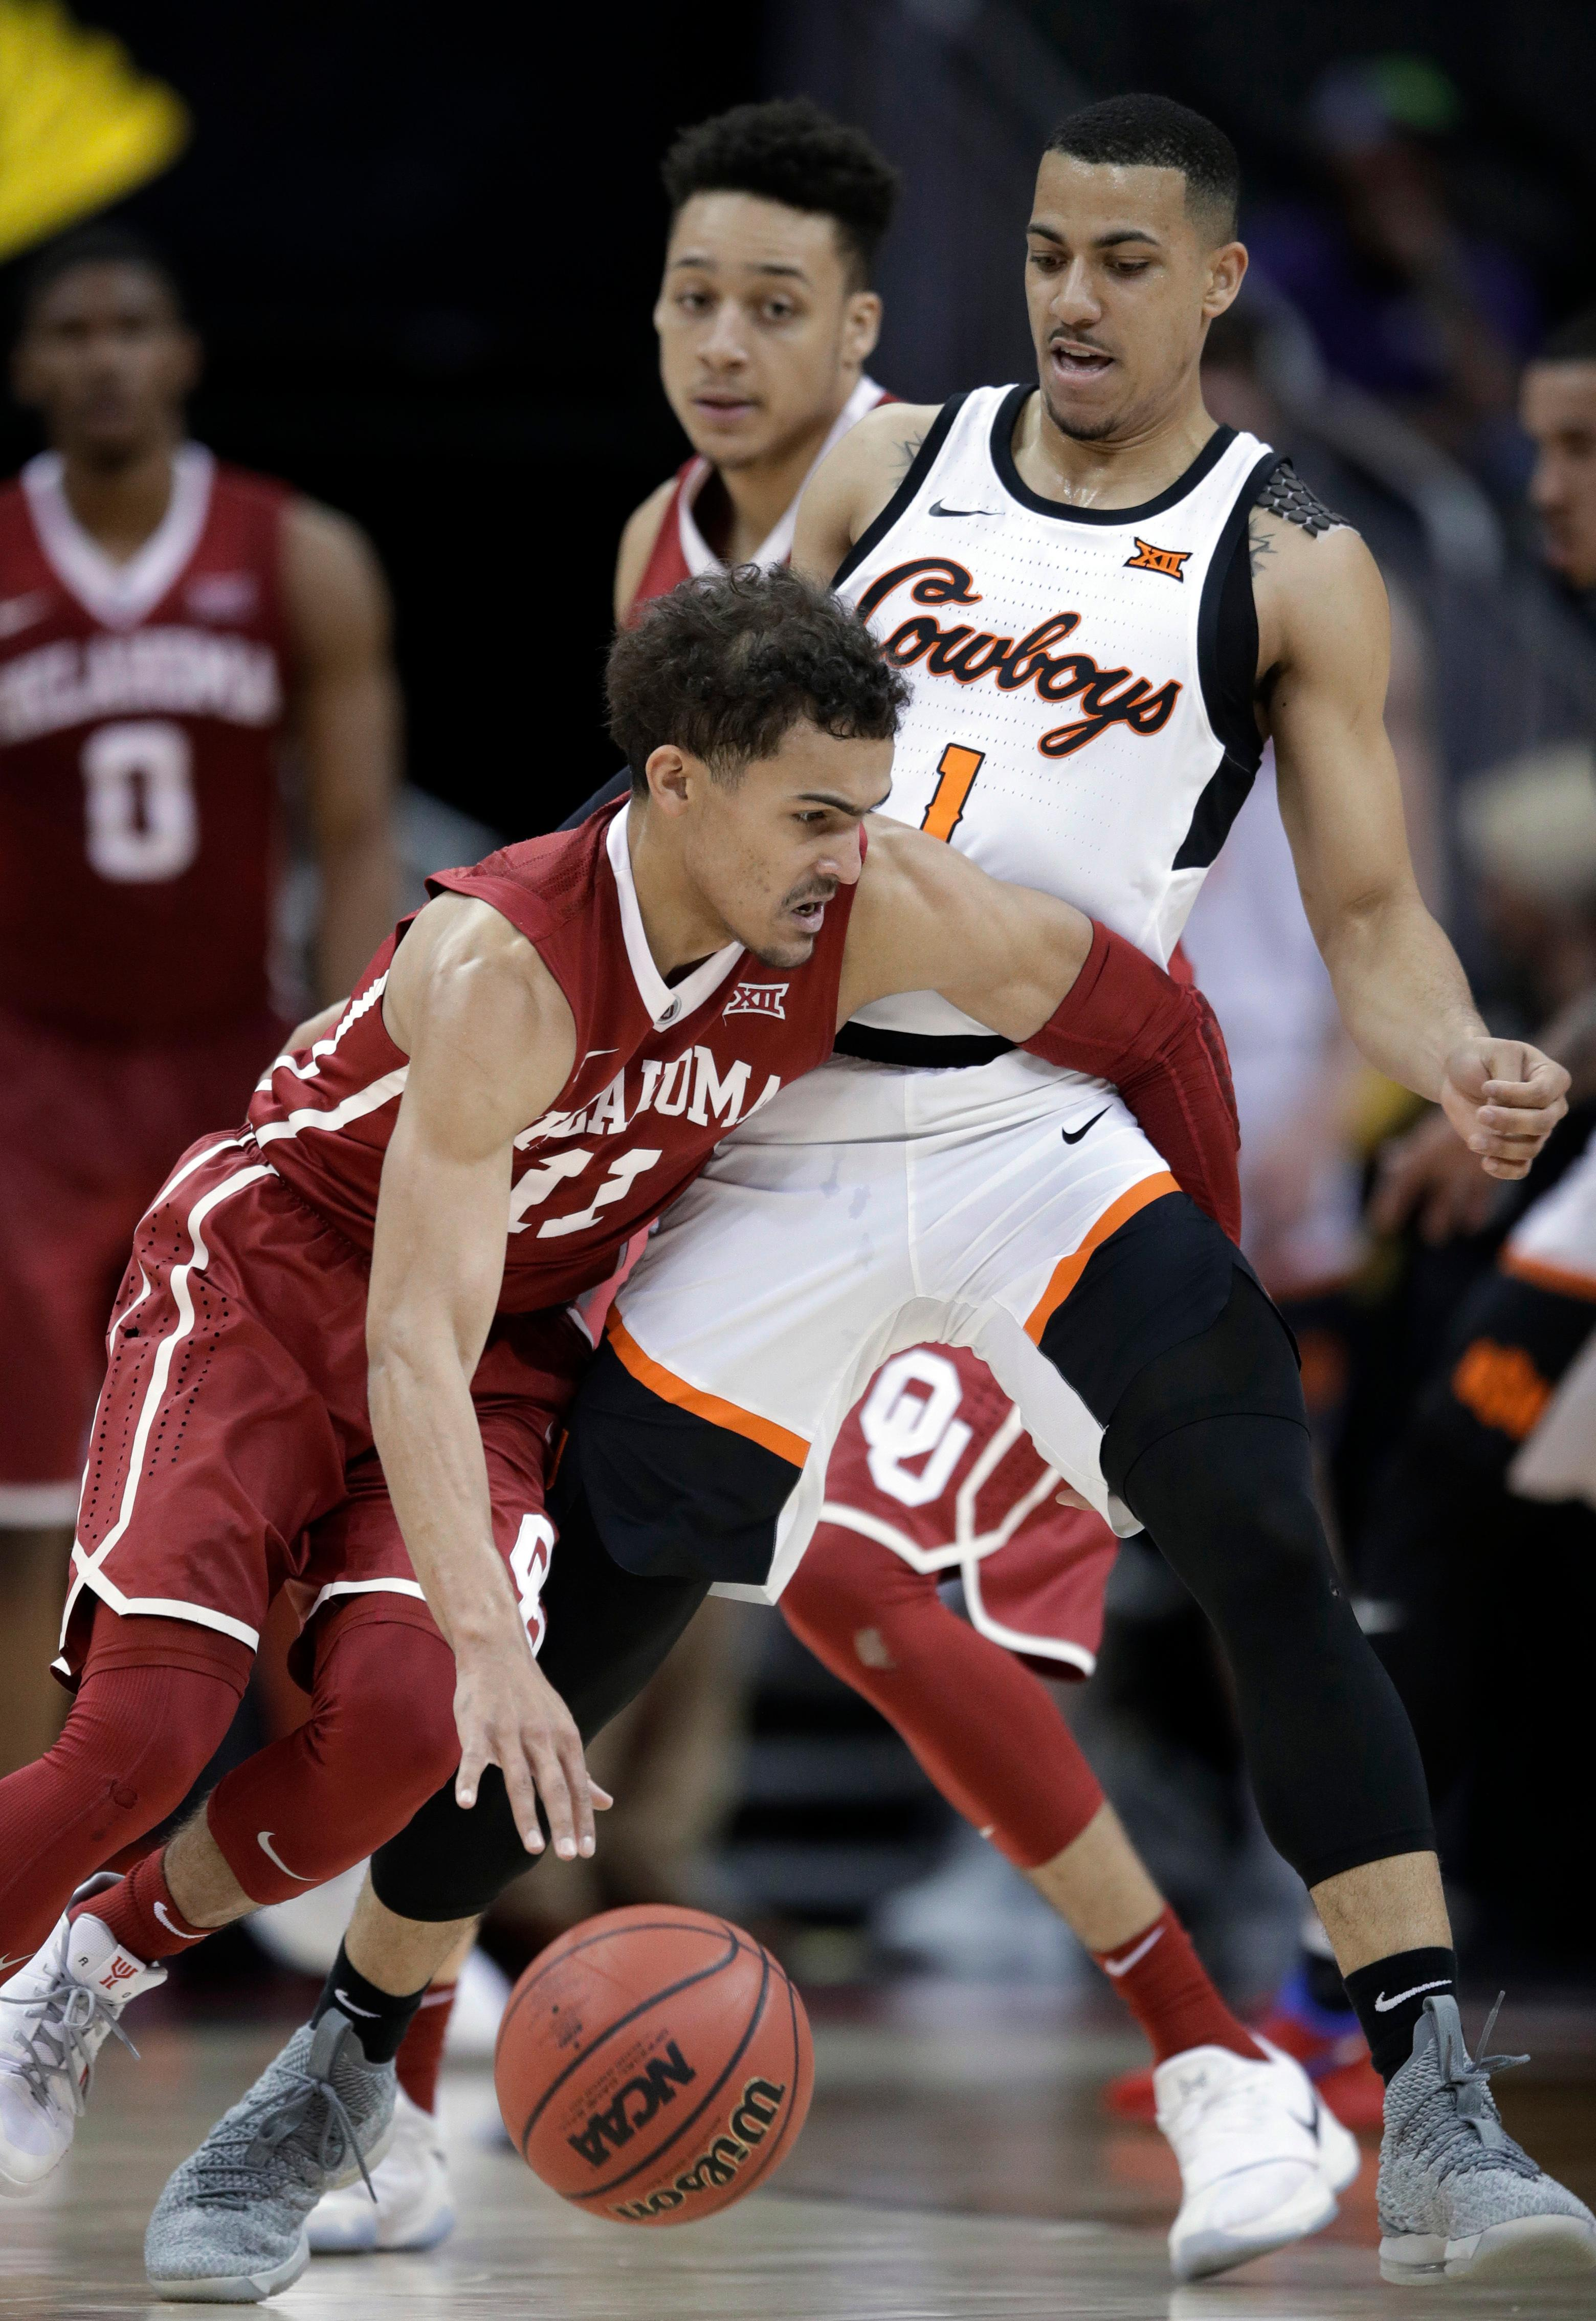 Oklahoma guard Trae Young (11) works around Oklahoma State guard Kendall Smith (1) during the first half of an NCAA college basketball game in first round of the Big 12 men's tournament in Kansas City, Mo., Wednesday, March 7, 2018. (AP Photo/Orlin Wagner)